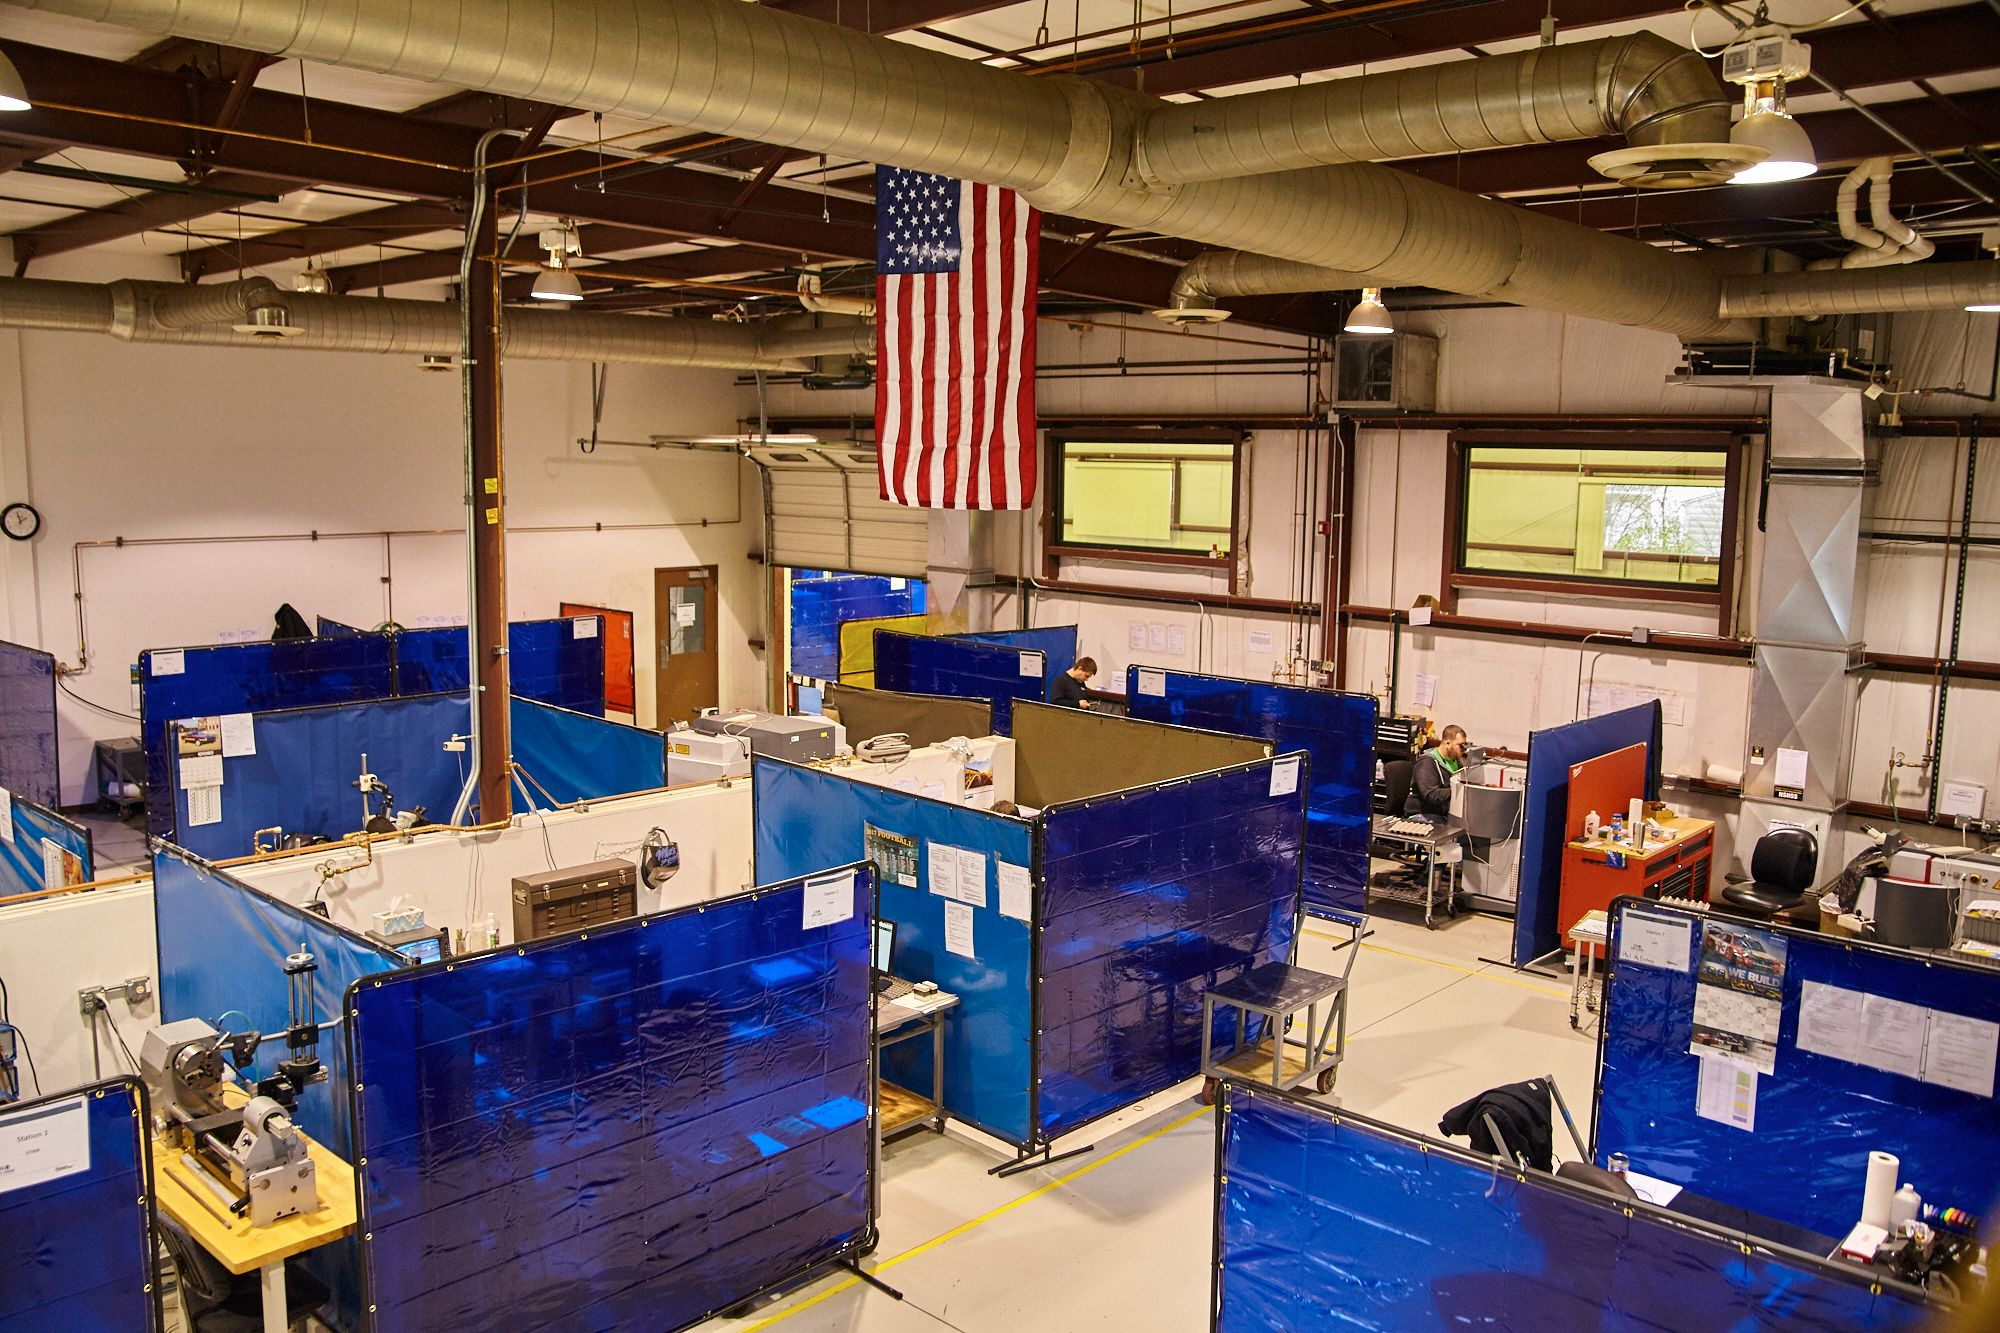 Inside the Fort Wayne facility, clean and lab-quality welding setup